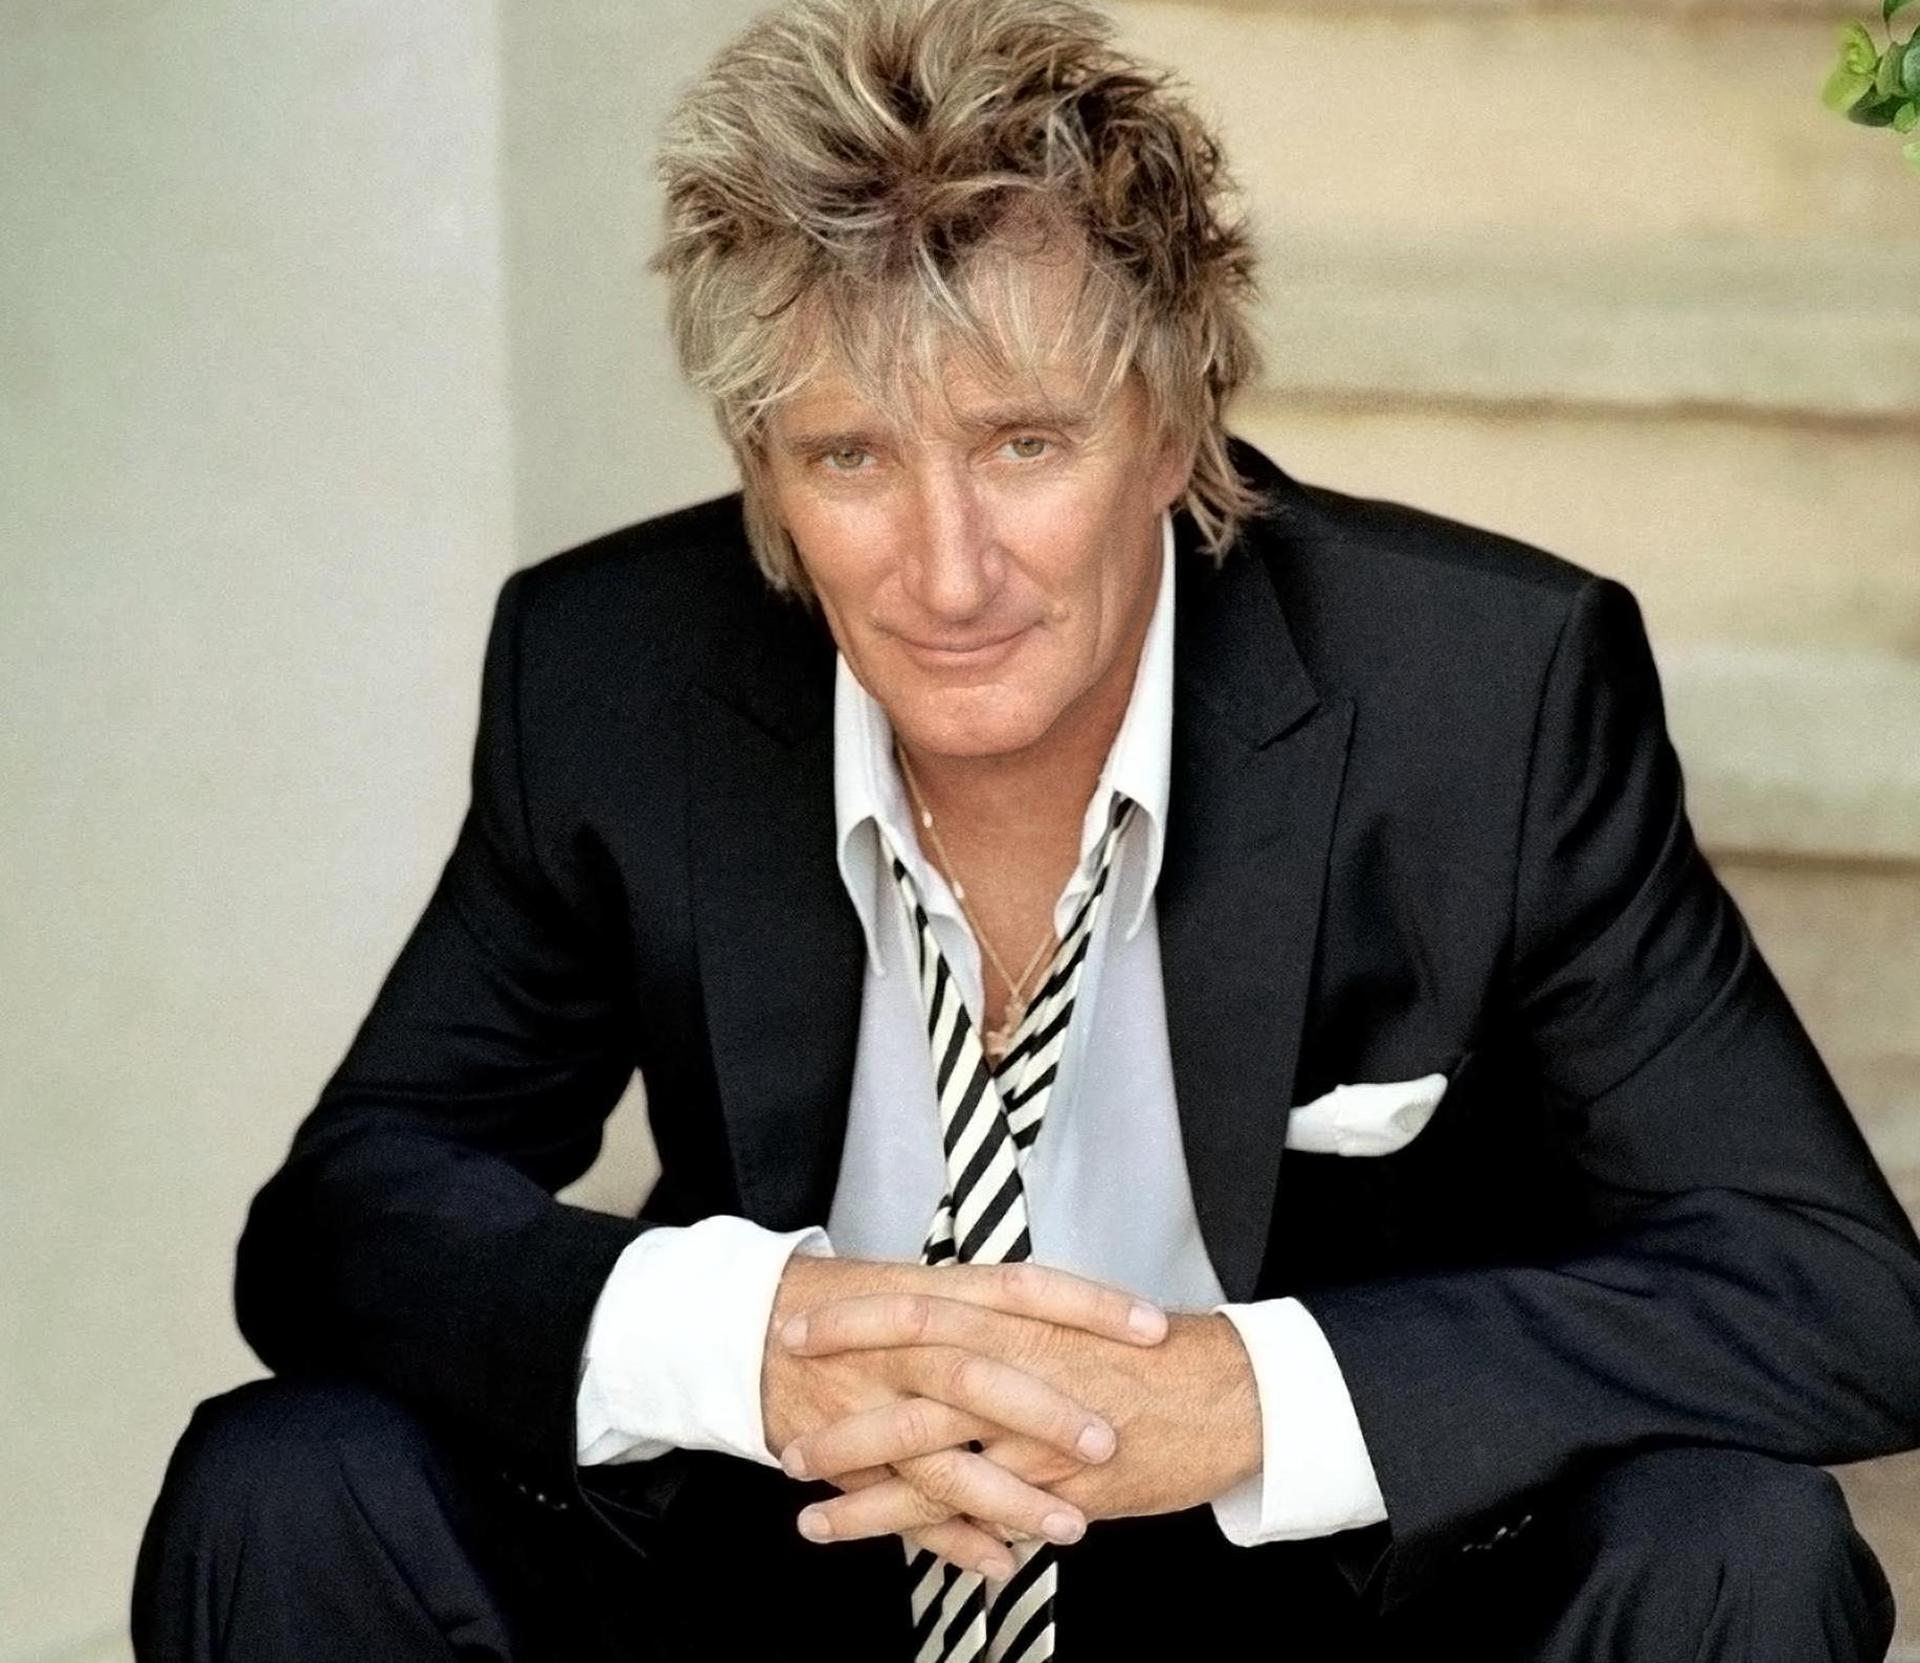 Rod Stewart Tribute Night on 12 December at 19:00